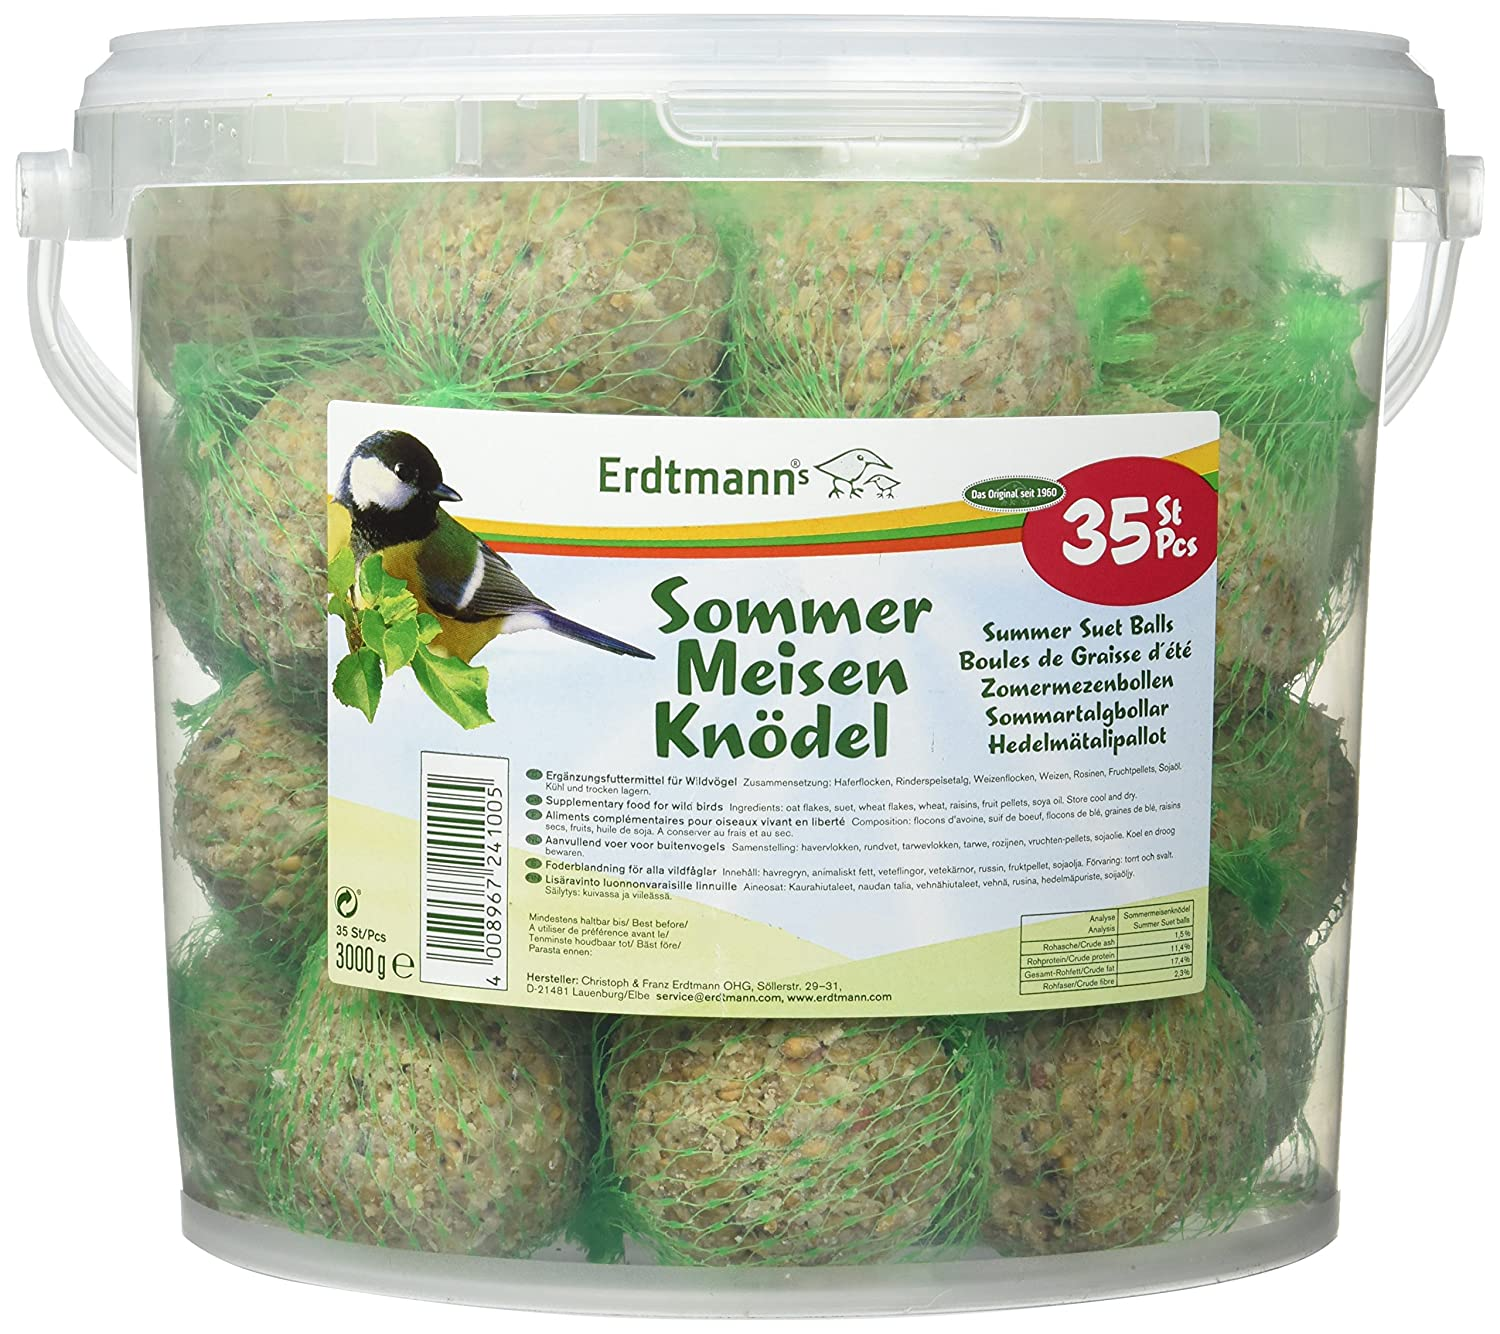 Erdtmanns 35 Summer Suet Balls in a Tub, 3 Kg 224100